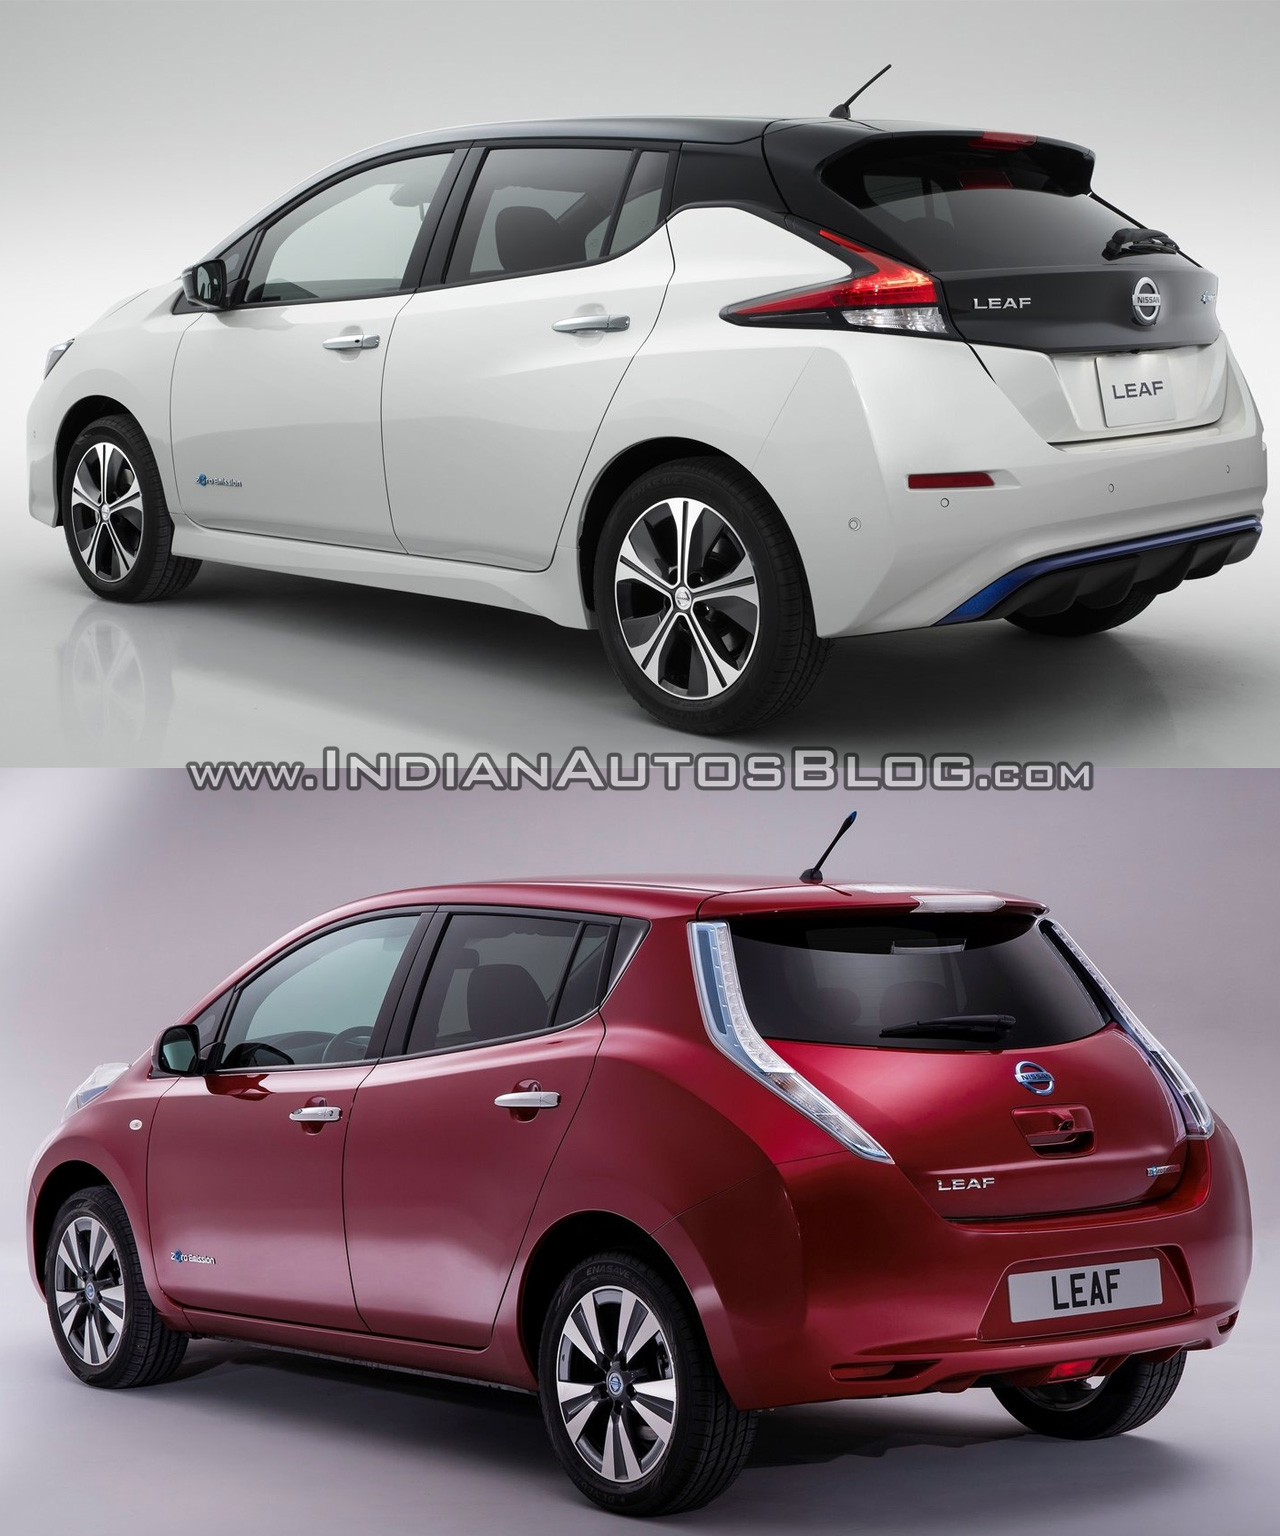 2018 nissan leaf vs 2014 nissan leaf old vs new. Black Bedroom Furniture Sets. Home Design Ideas